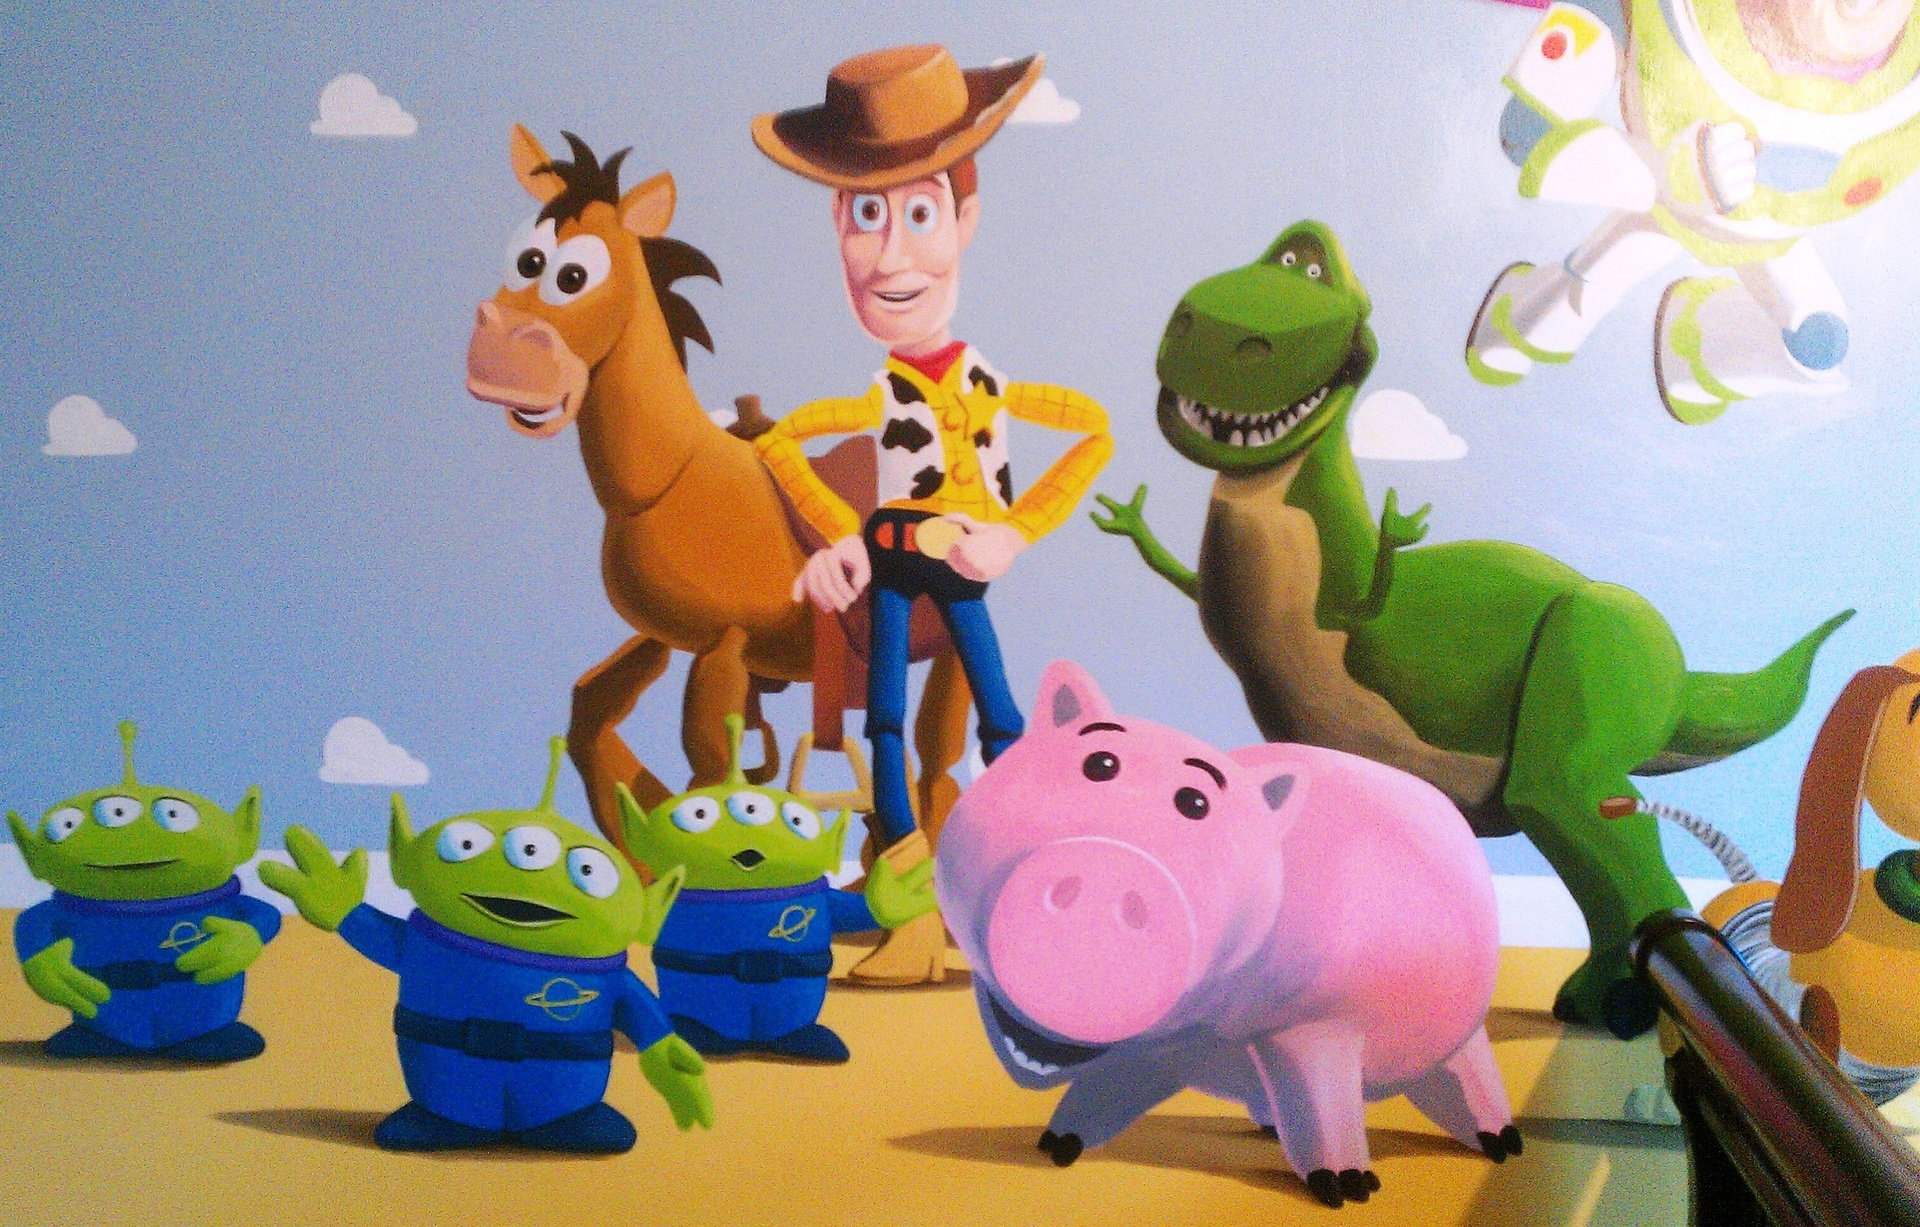 Toy Story Wallpaper Mural Uk Labzada Wallpaper